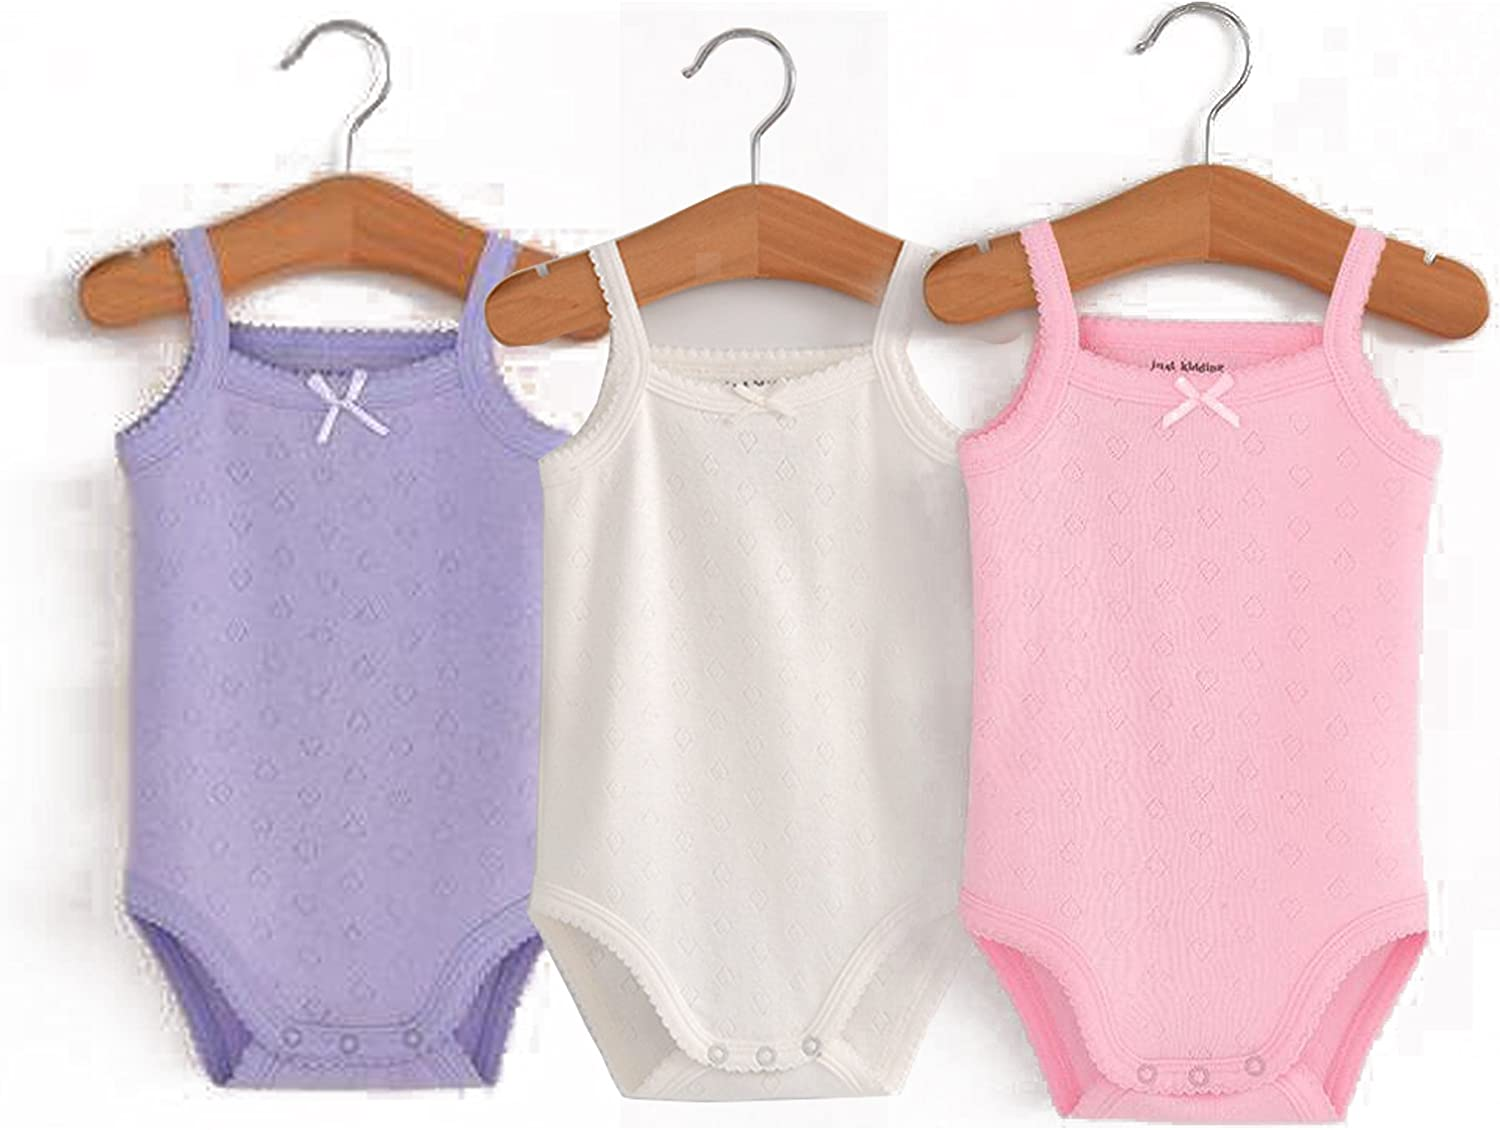 Infant Baby Girls Sleeveless Onesies Tank Top Cotton Baby Bodysuit Pack of Baby Summer Colorful Clothes Outfit